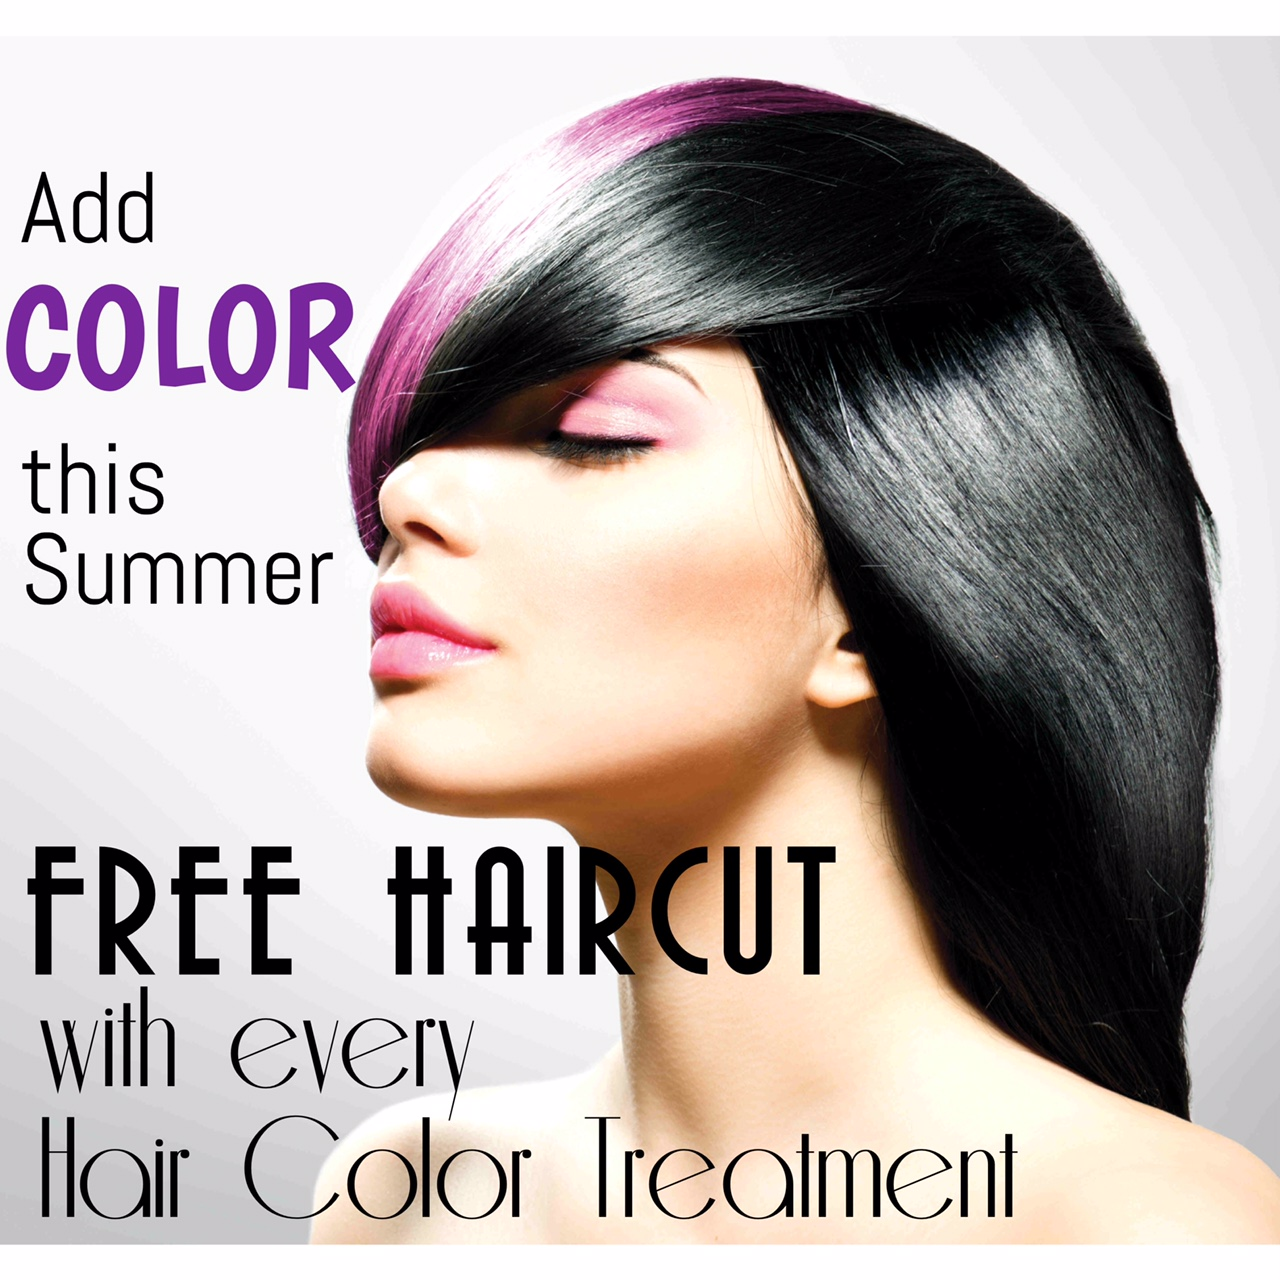 Free Haircut With Every Hair Color Treatment